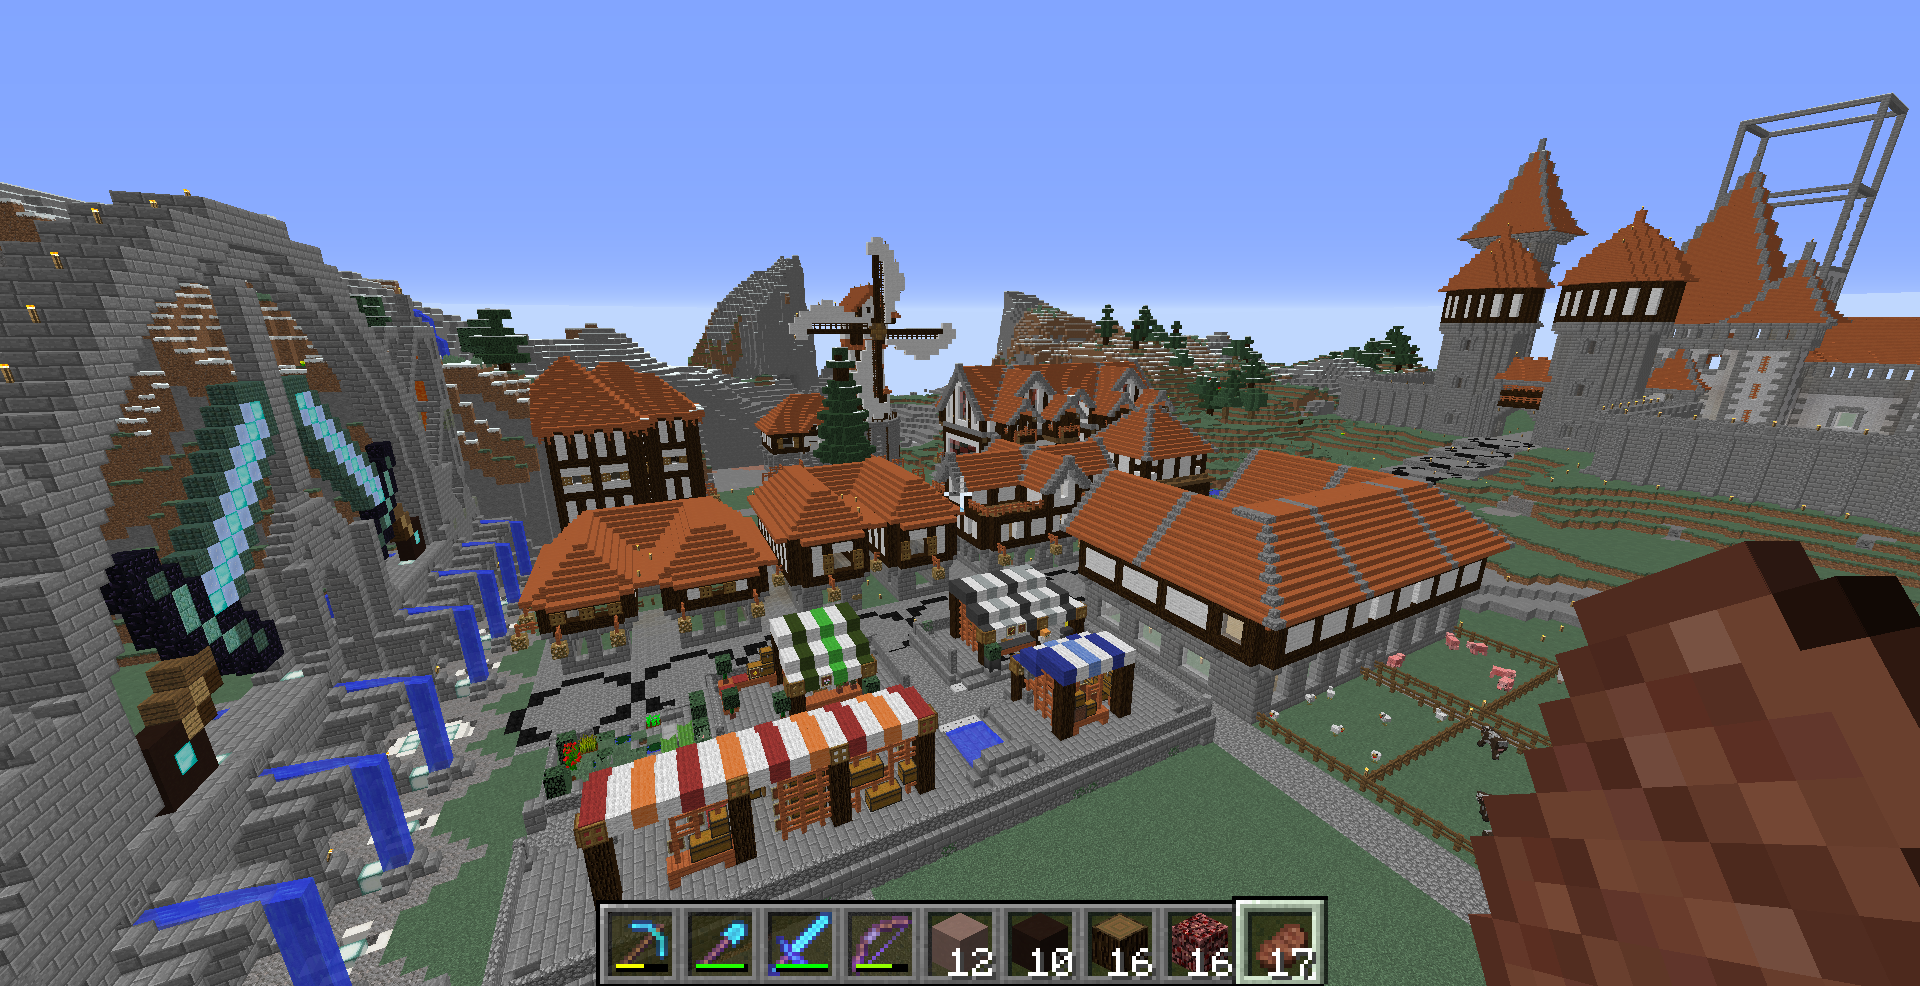 Pin By Tabitha Parnell Sims On Minecraft Build Ideas